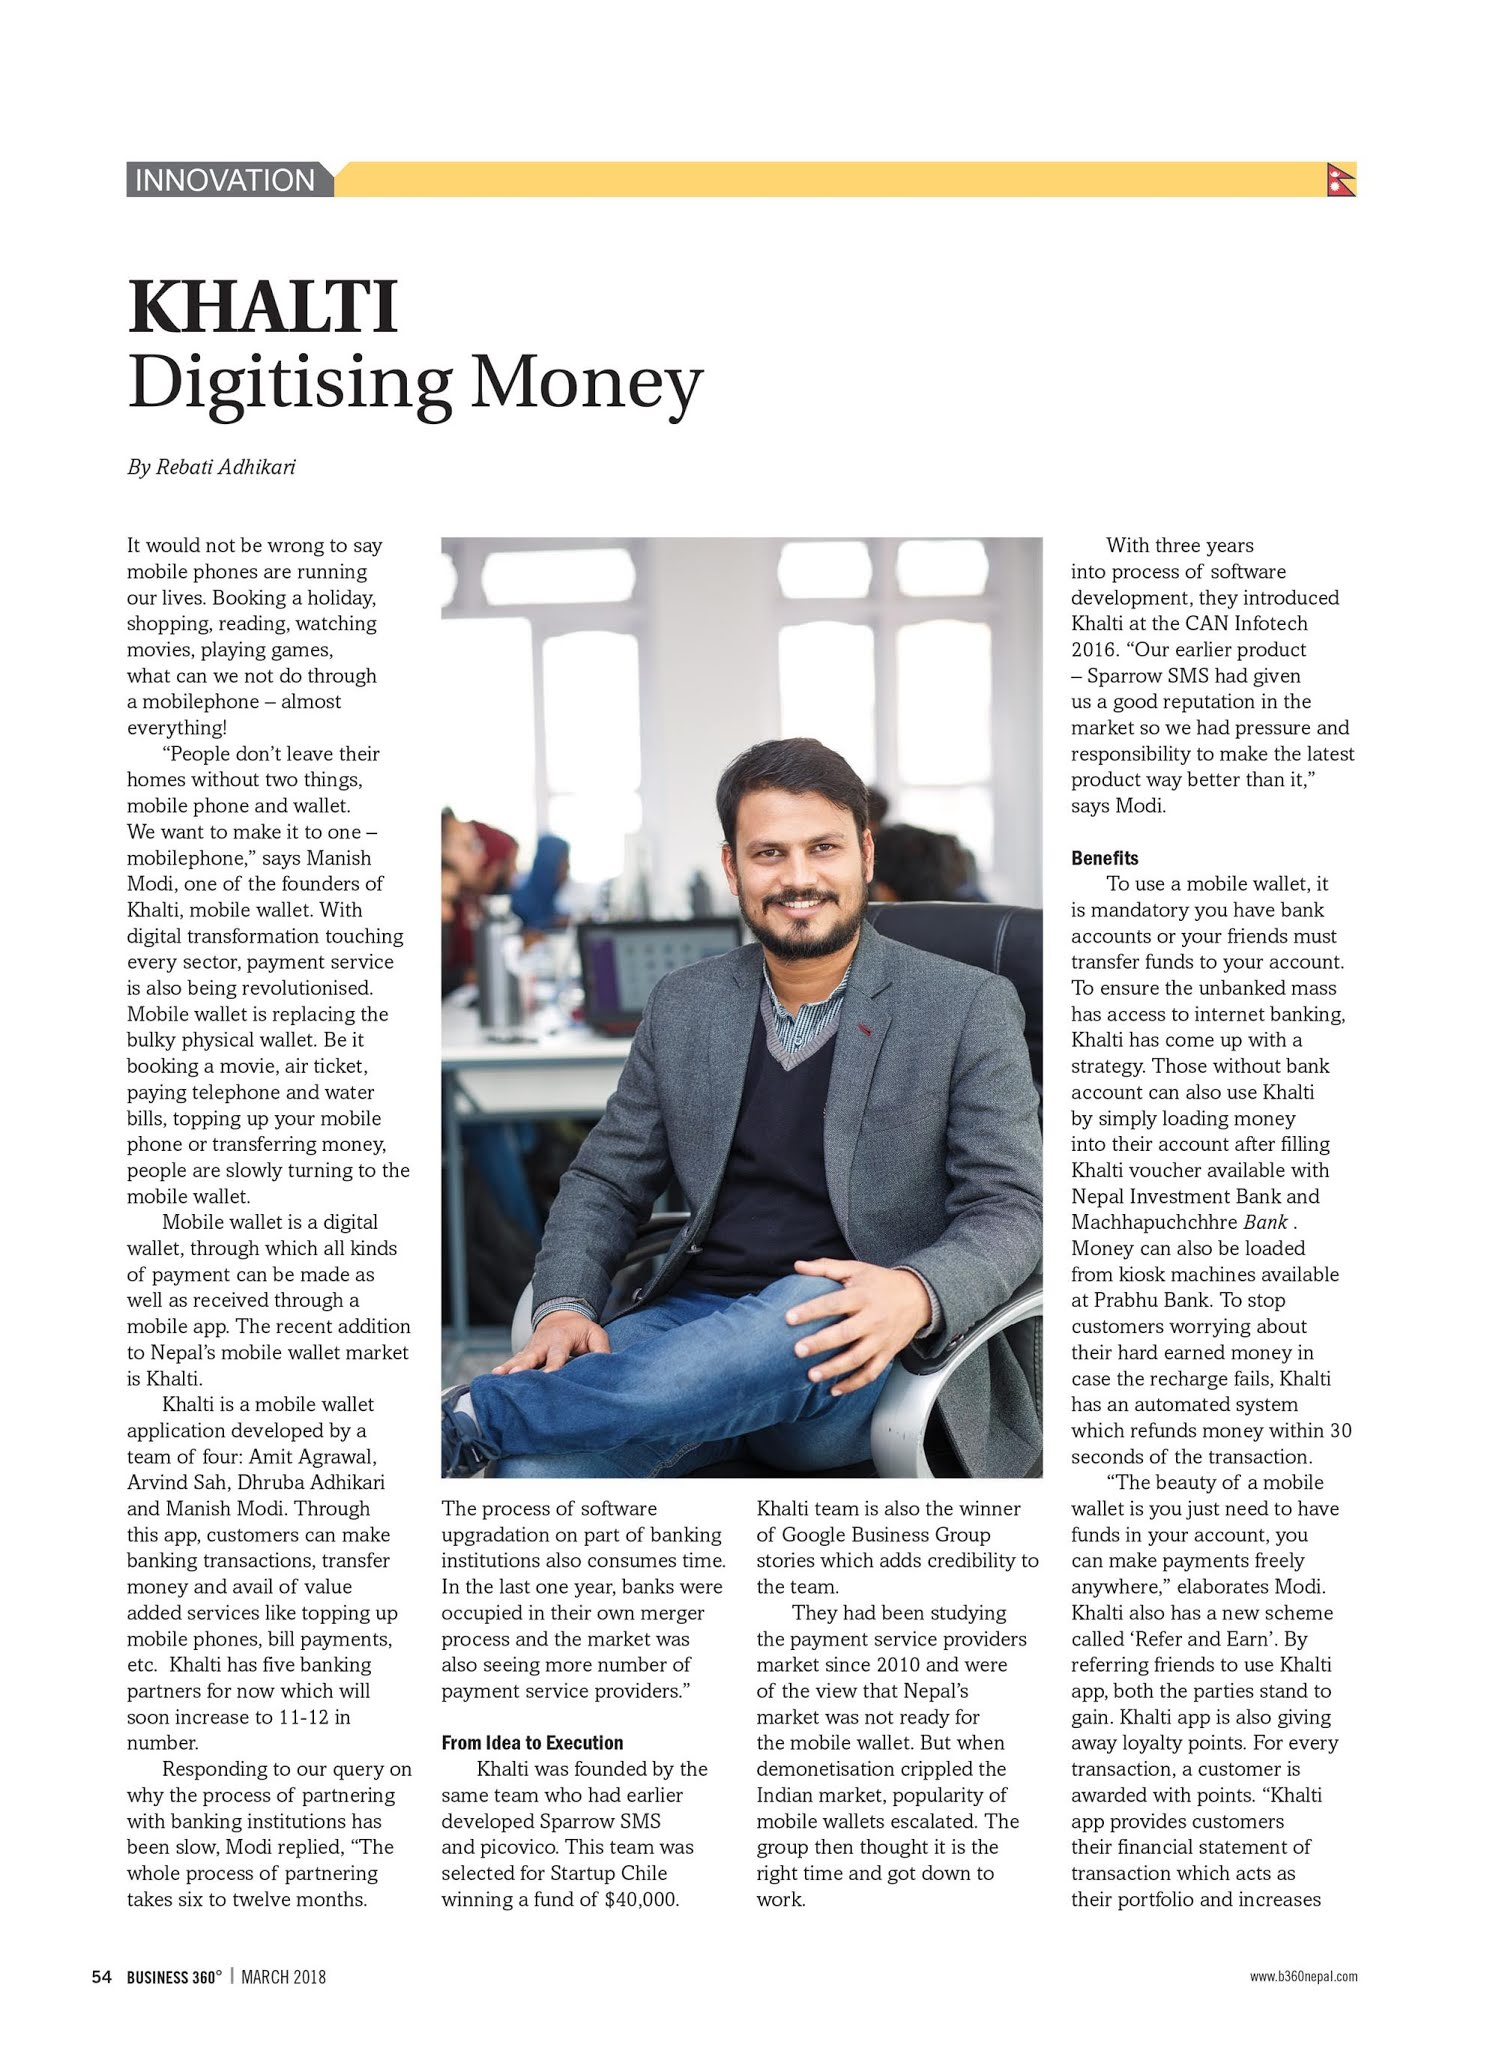 Khalti Digitizing money in Nepal_Coverage in Business 360_I